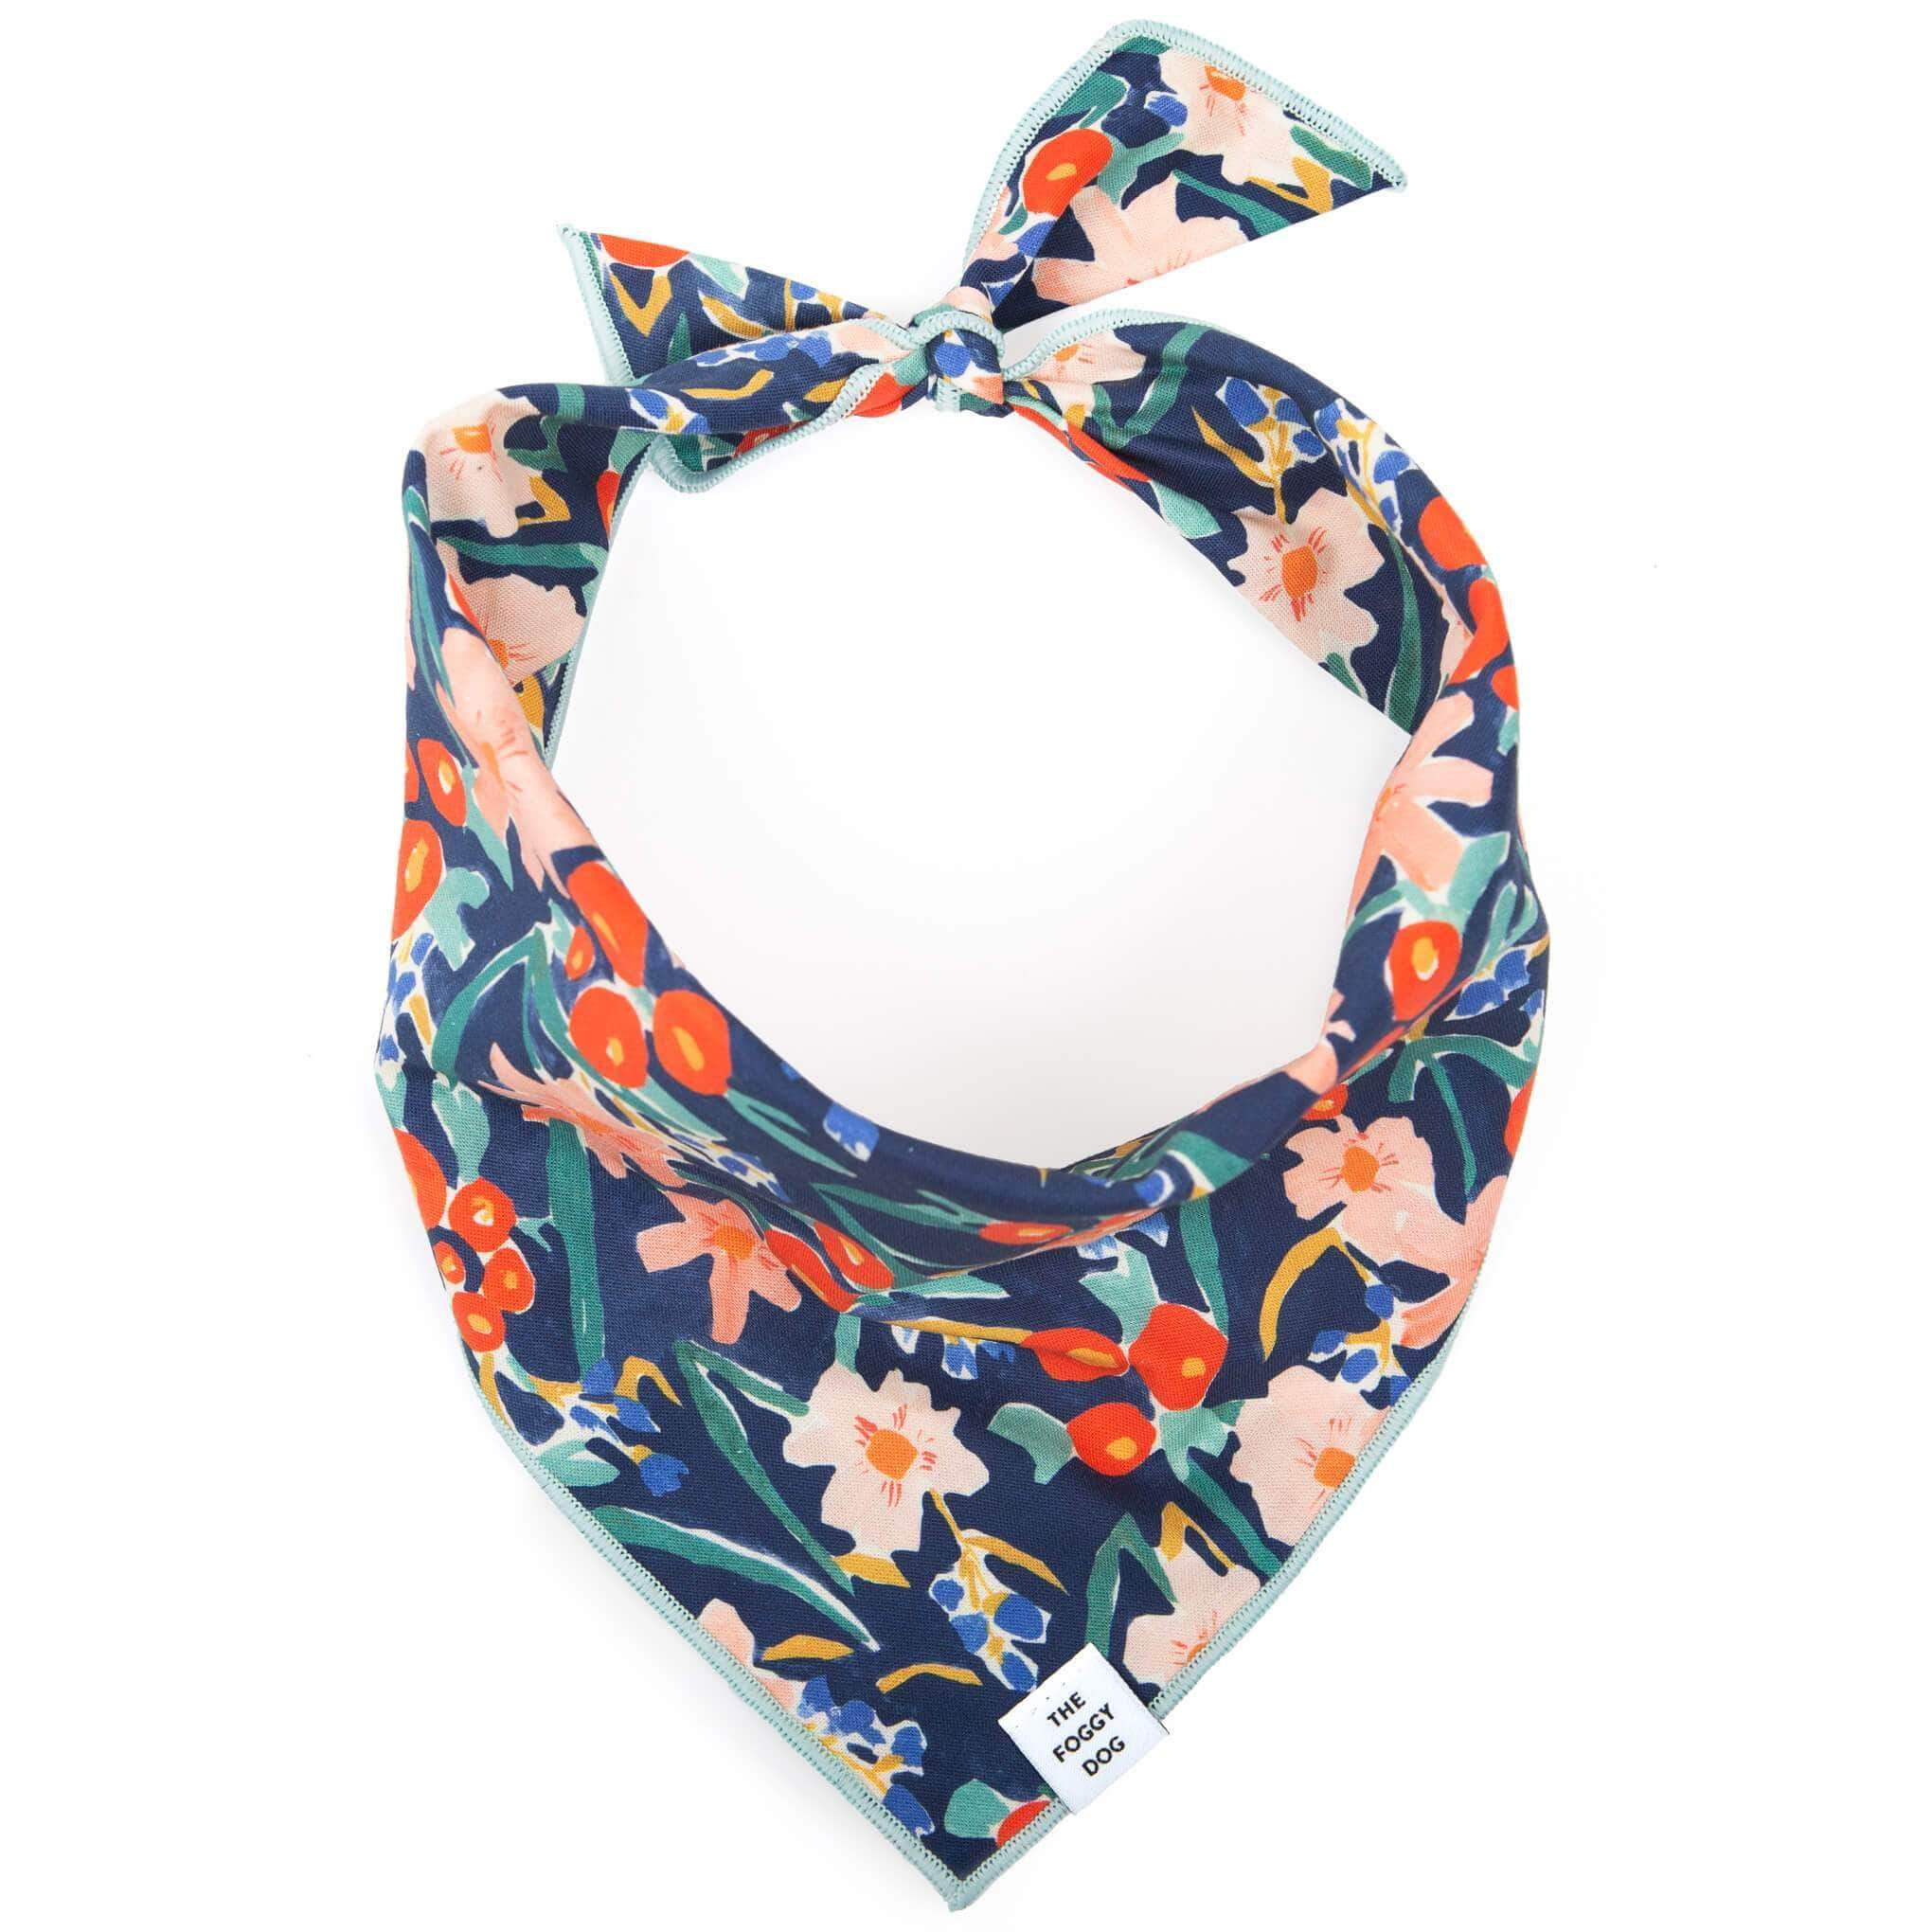 The Foggy Dog Dog Bandana - Inky Blooms